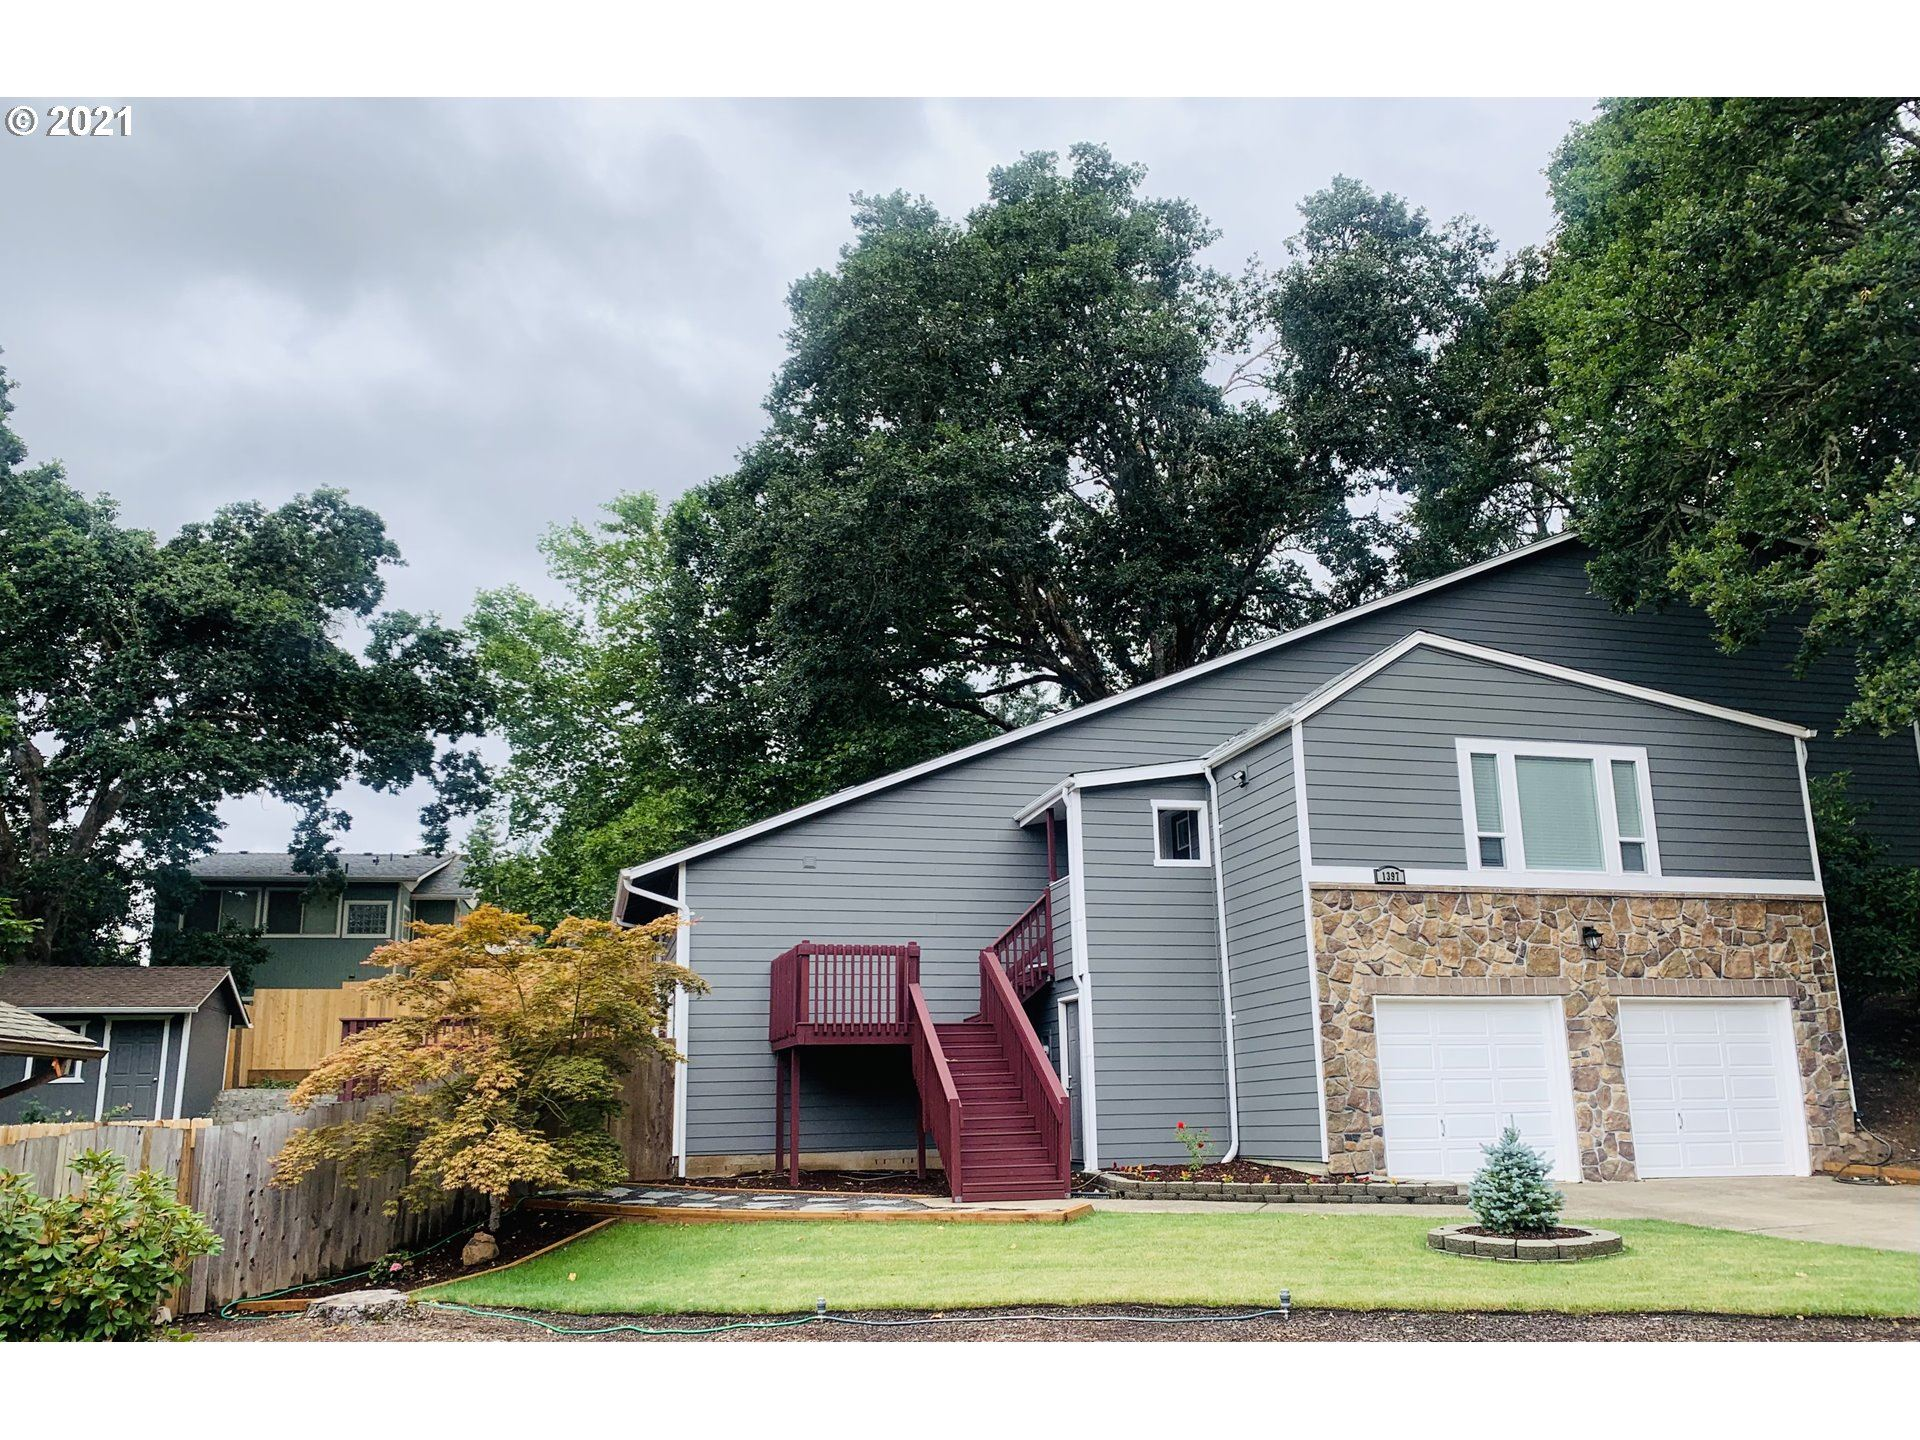 1397 WINDSONG CT NW, Salem, OR 97304 - MLS#: 21219794